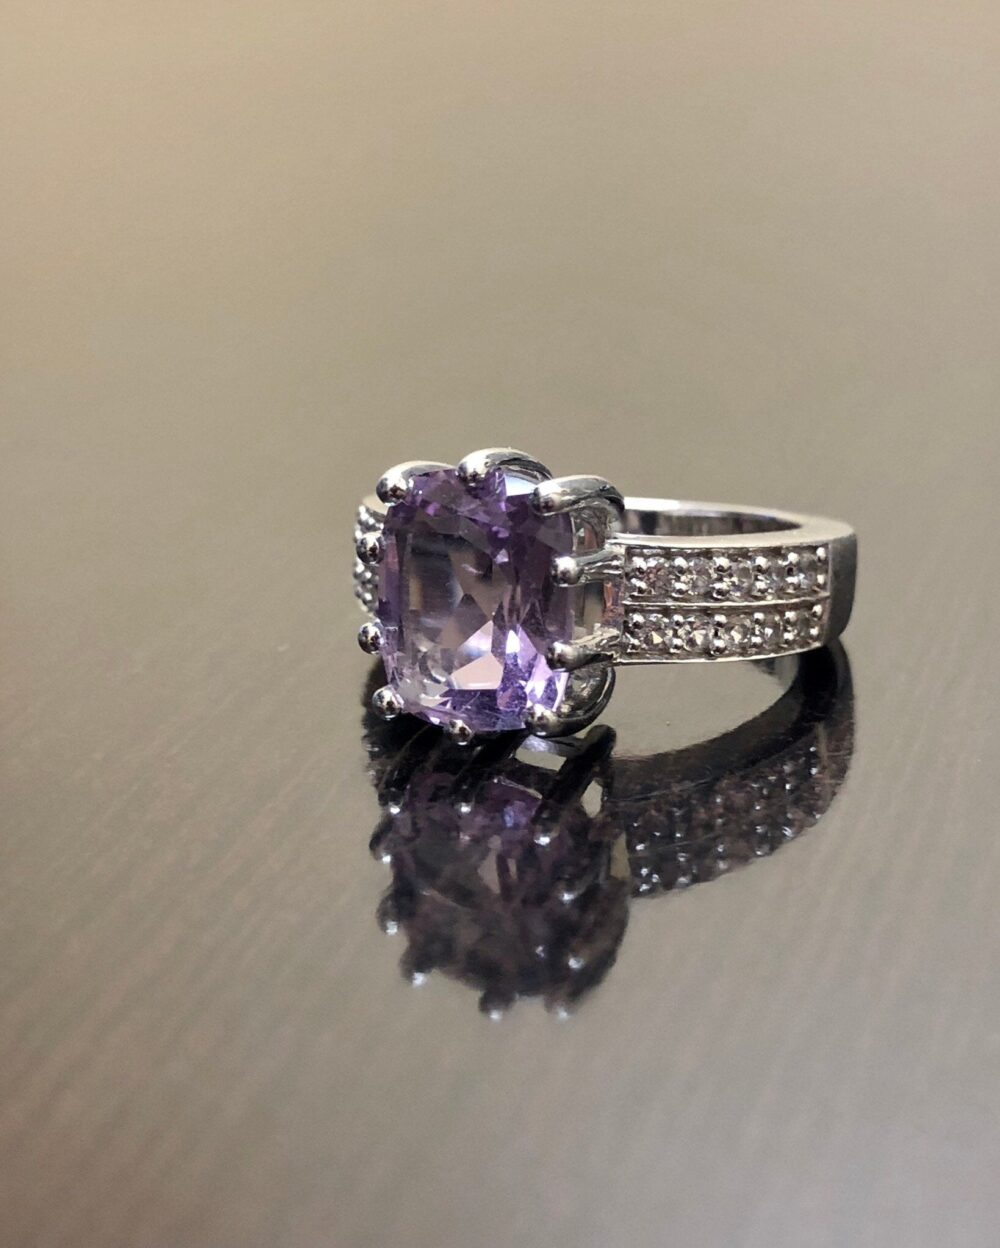 sterling Silver Art Deco Cushion Cut Amethyst Engagement Ring - White Topaz Wedding